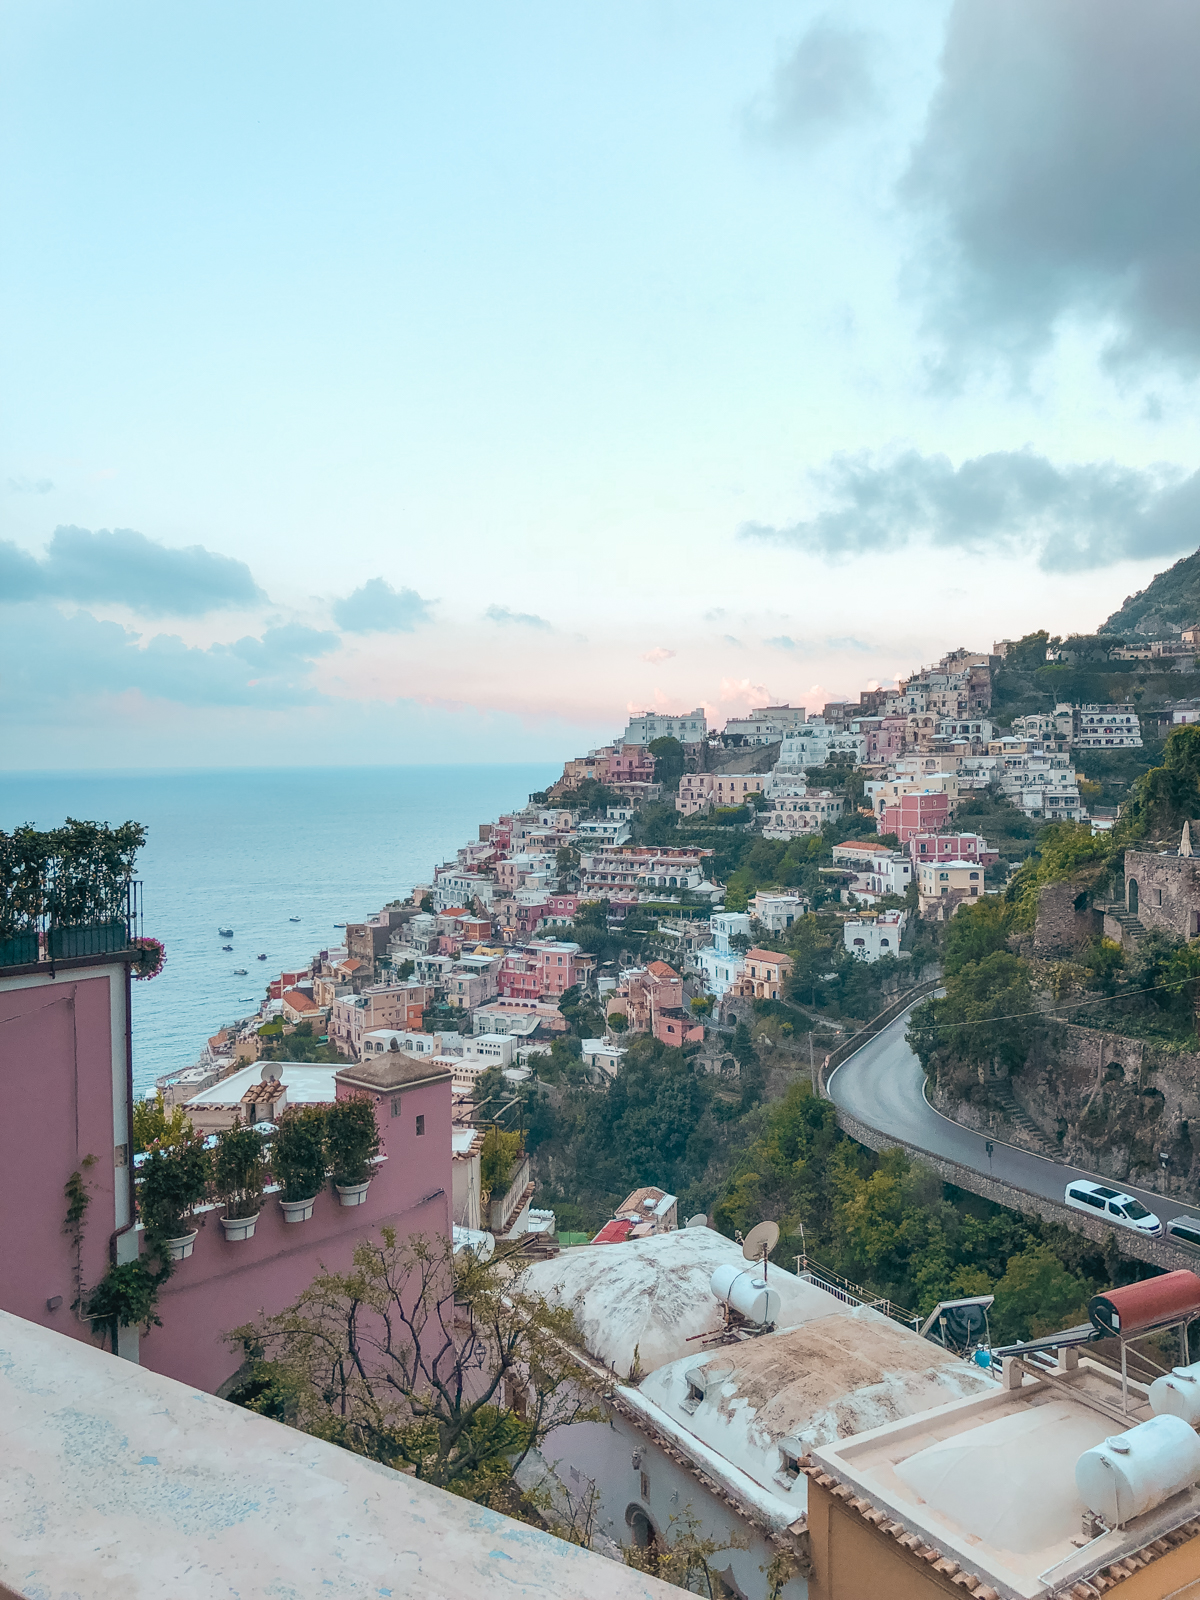 Positano view from our airbnb balcony